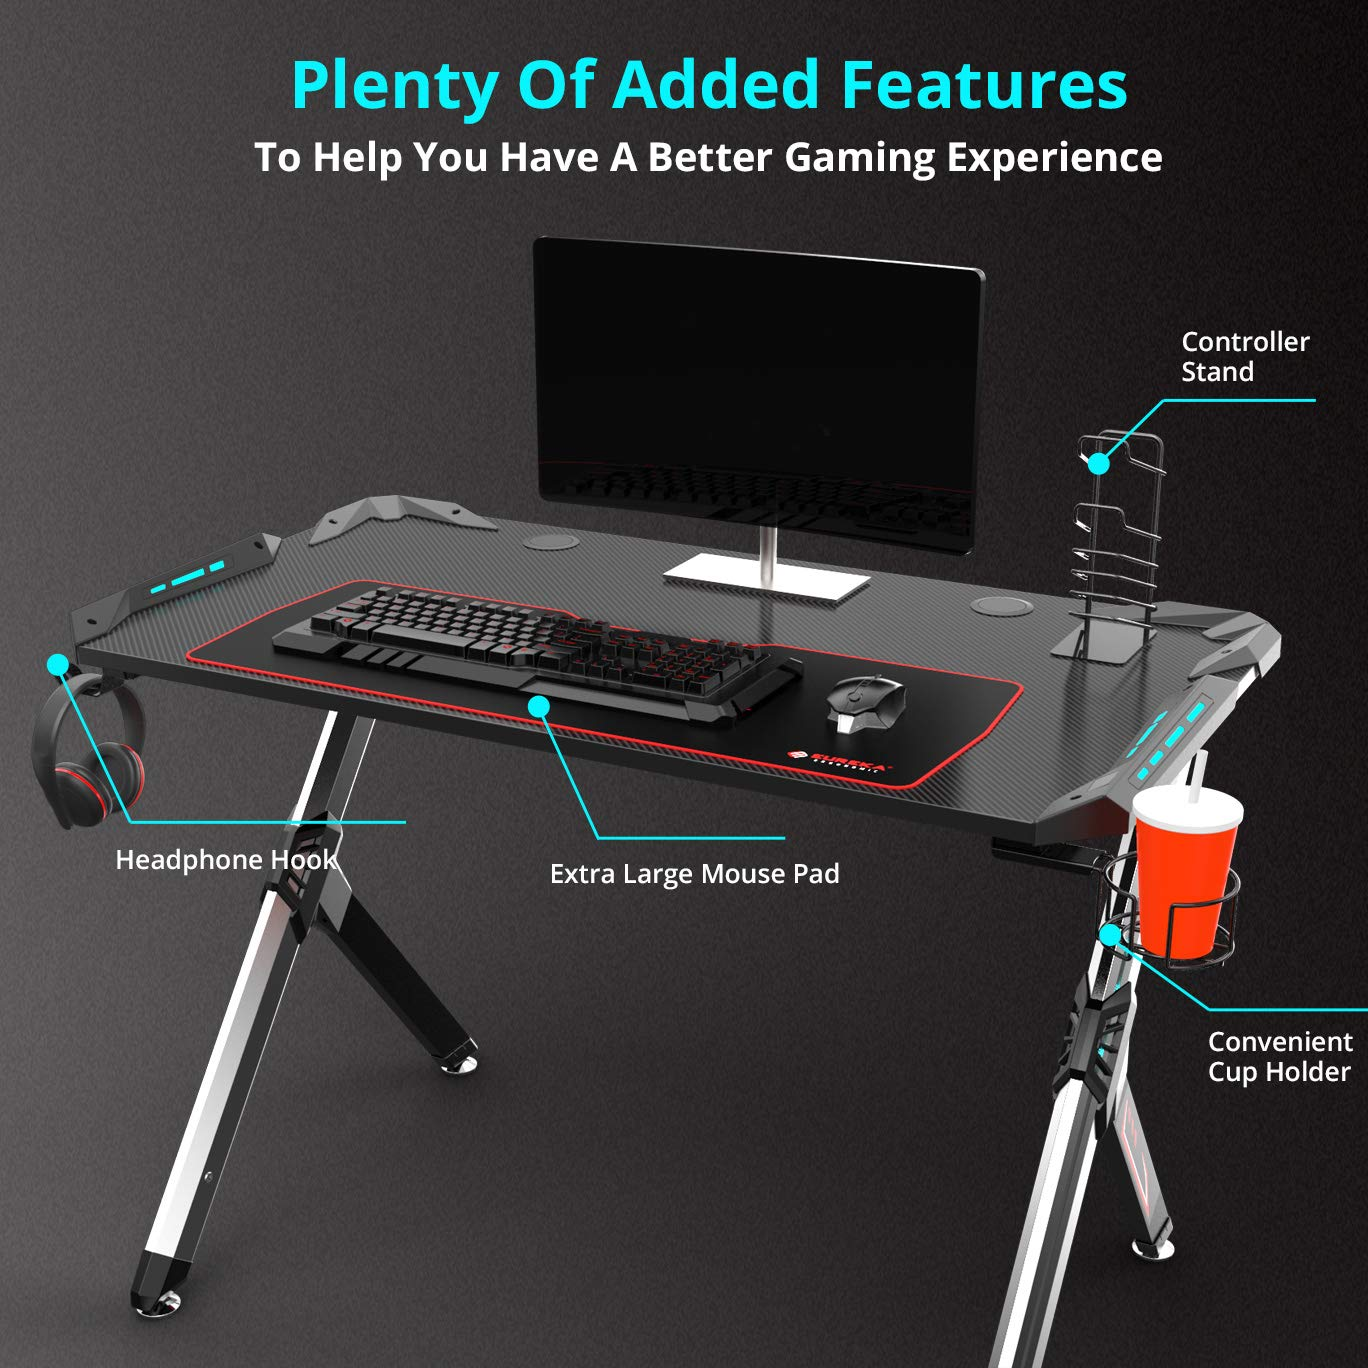 Eureka Ergonomic R1-S Gaming Desk 44.5 Office PC Computer Gamer Desks Pro RGB LED Lights, Sturdy Aluminum Alloy Table Legs with Controller Stand Cup Holder Headphone Hook – Black